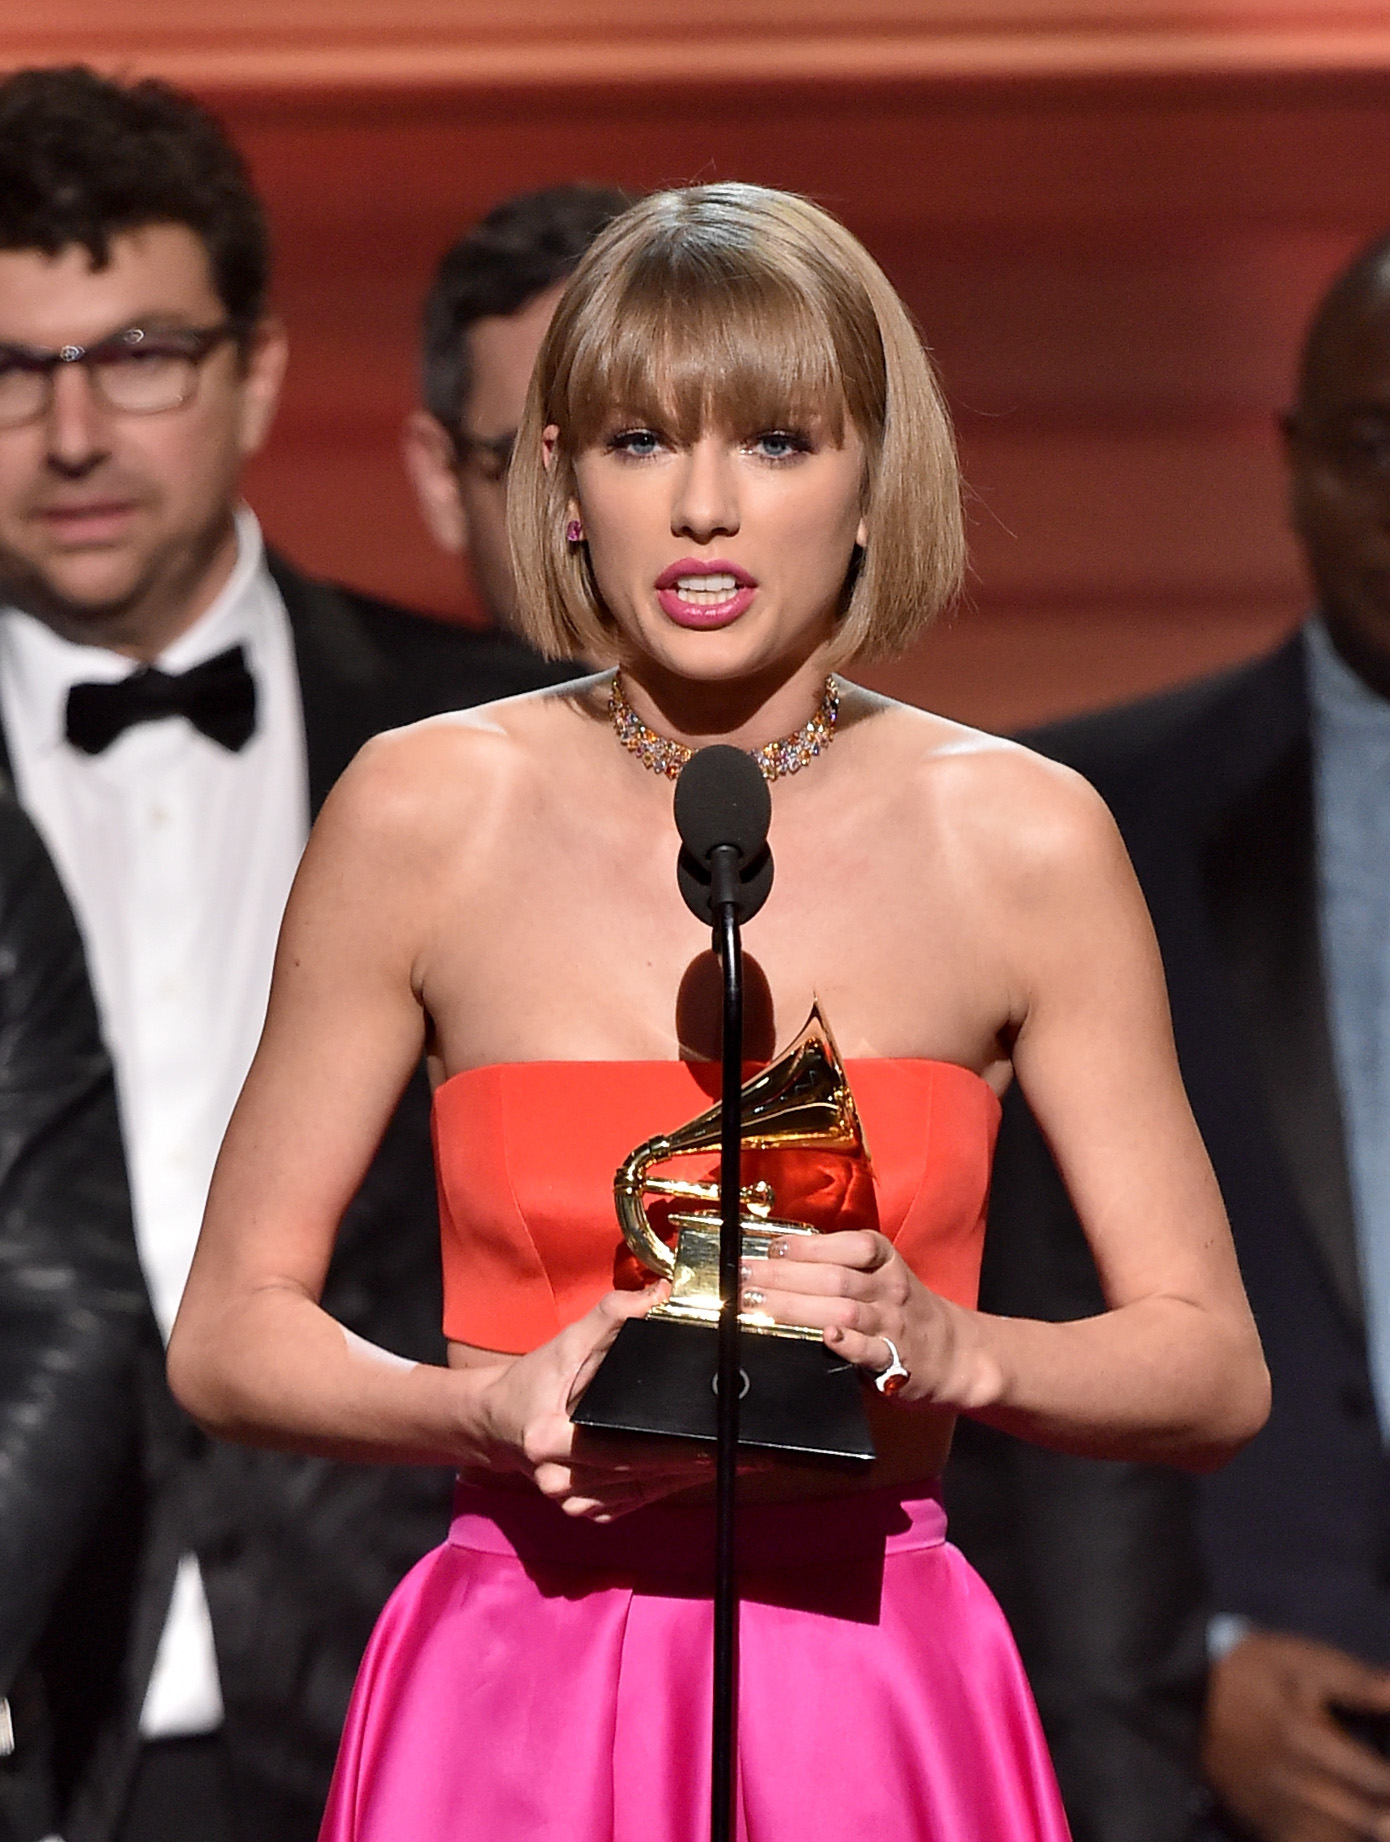 Taylor Swift warned young women about haters